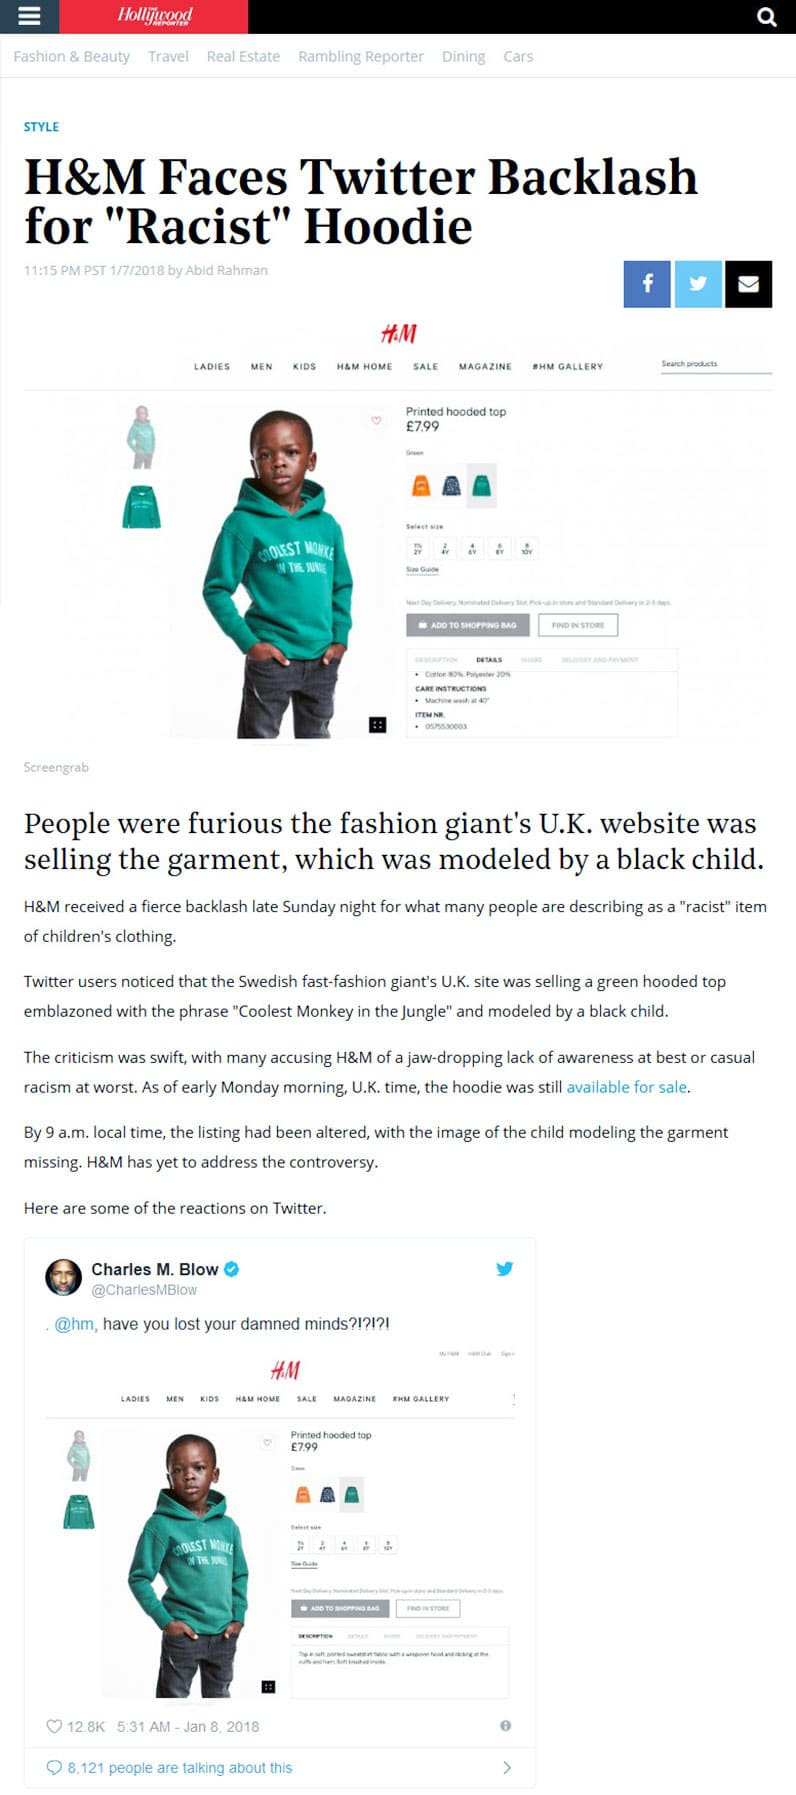 H&M Twitter Backlash Hollywood Reporter screenshot